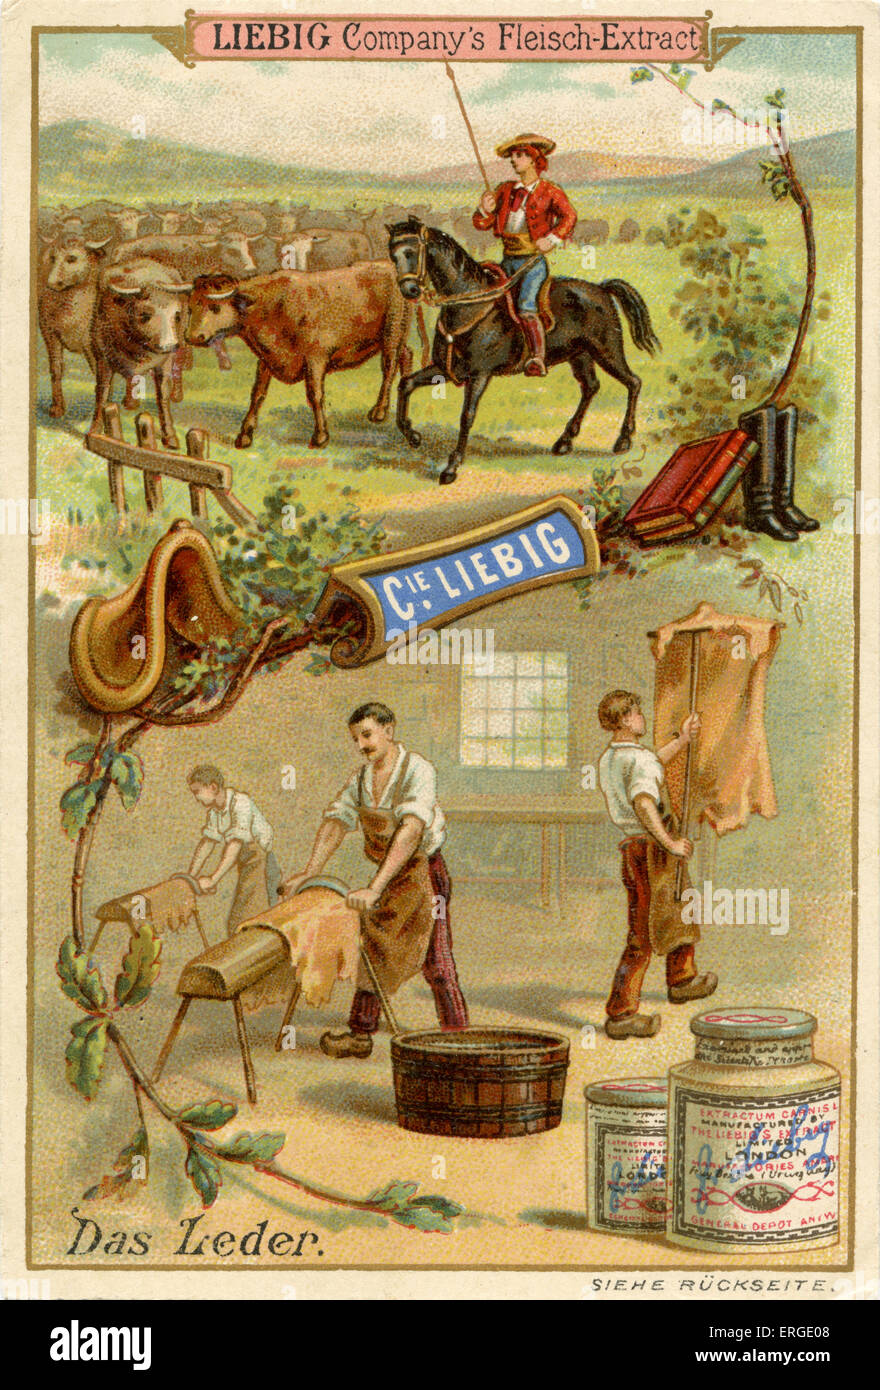 Leather ('Das Leder')  - Liebig Company collectible cards,  natural resources series. Published 1892. - Stock Image